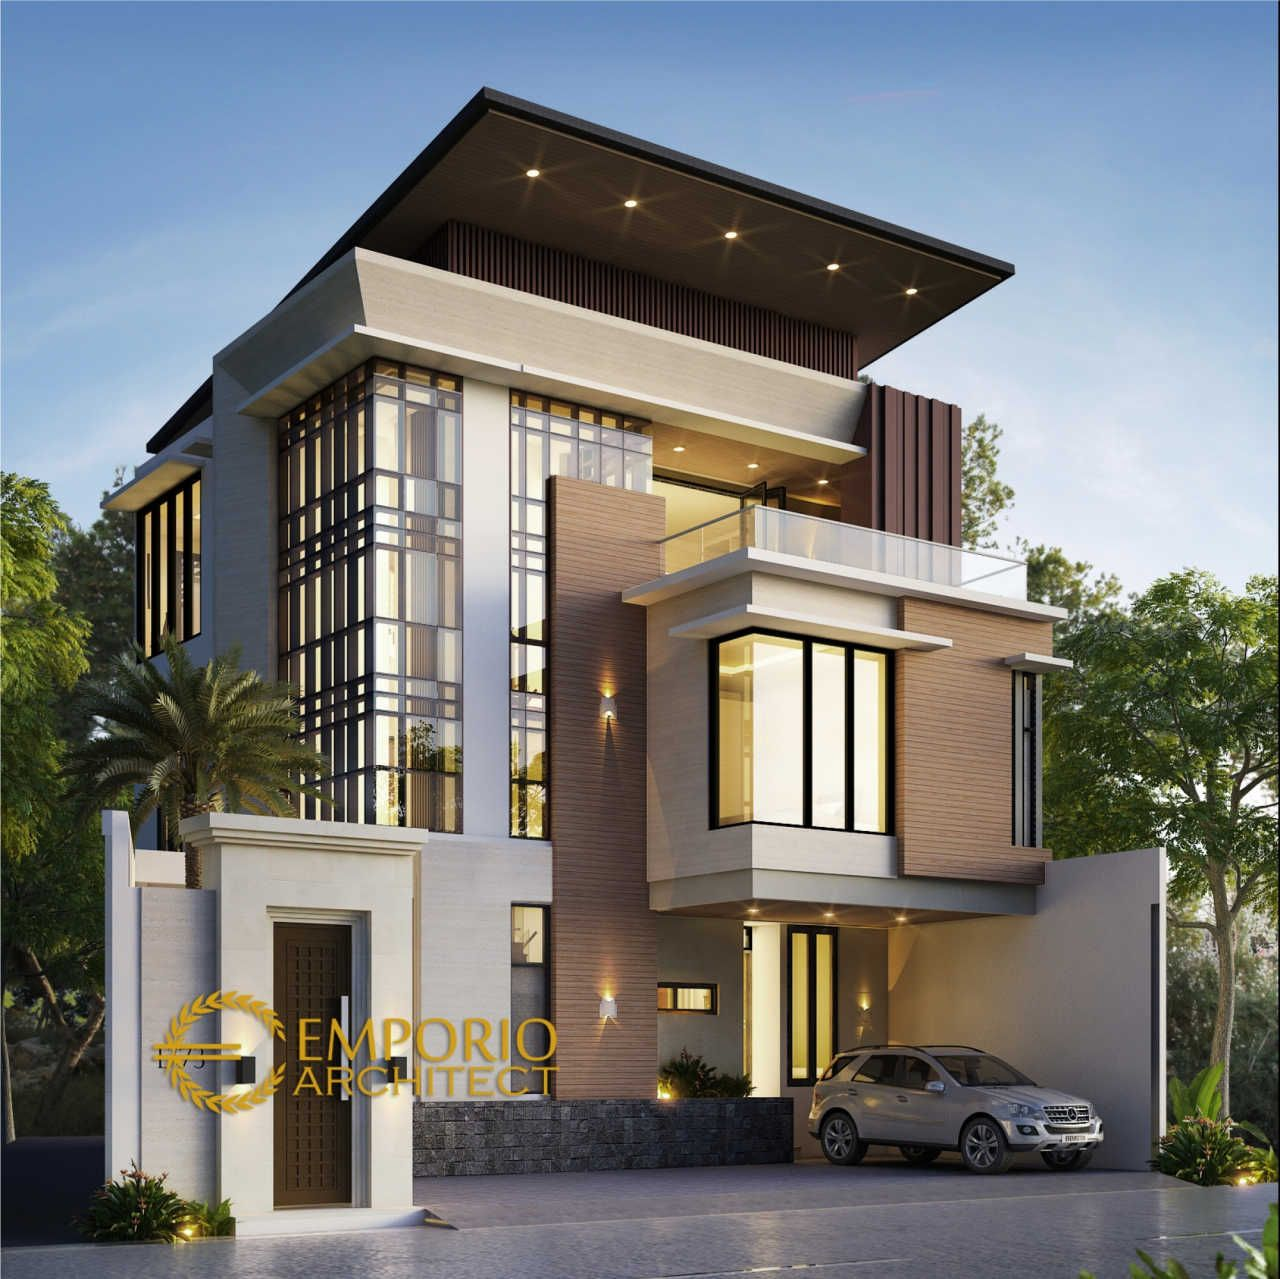 Mr Yanuarso Private House Design Jakarta In 2020 Modern Minimalist House House Front Design Contemporary House Plans